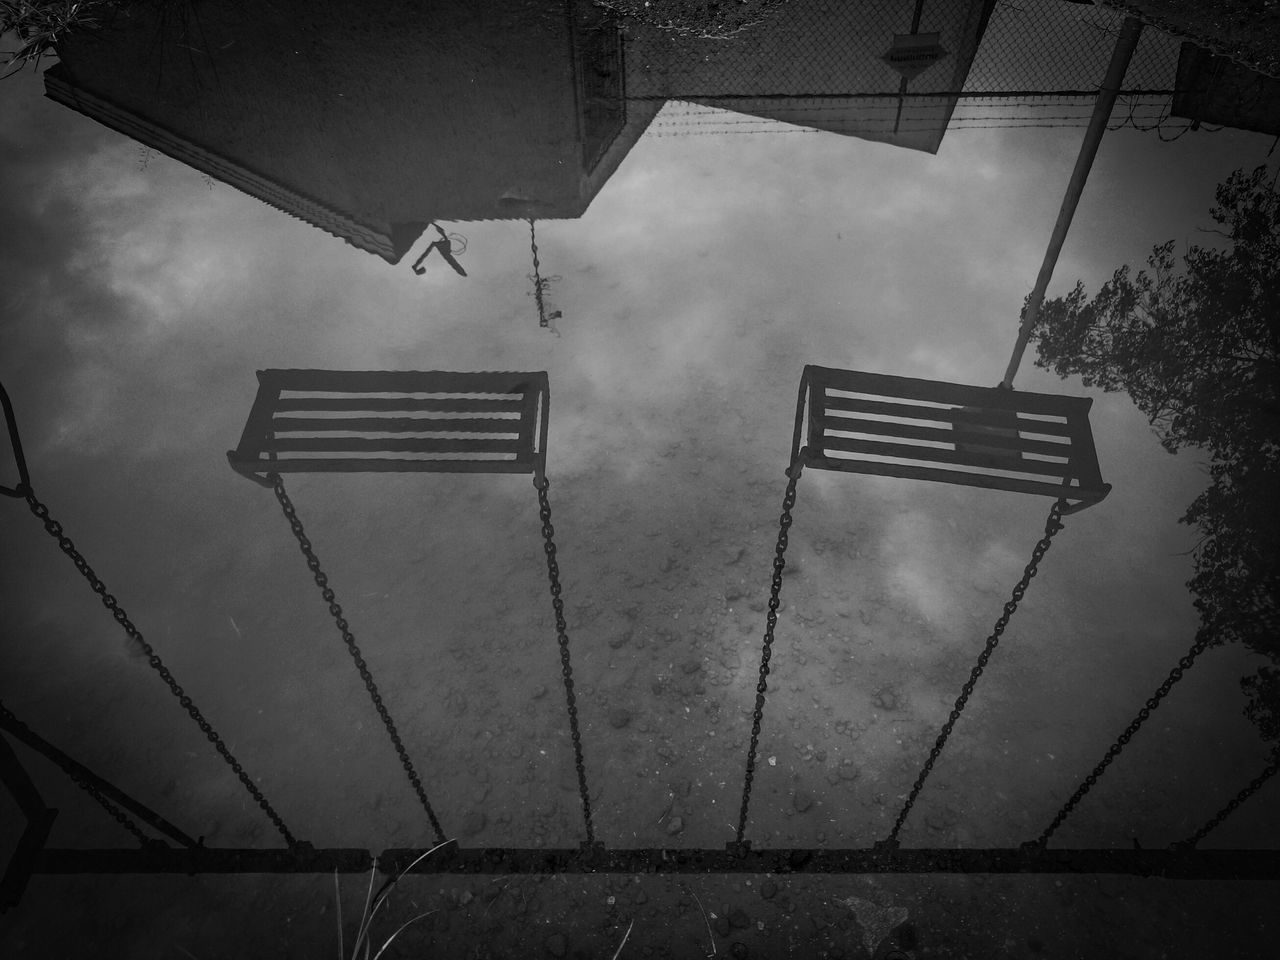 No People Low Angle View Outdoors Cloud - Sky Day Sky Vertical Jalisco, México Simple Photography Monochrome Photography Lonliness Lonliest Place Awake Reflection